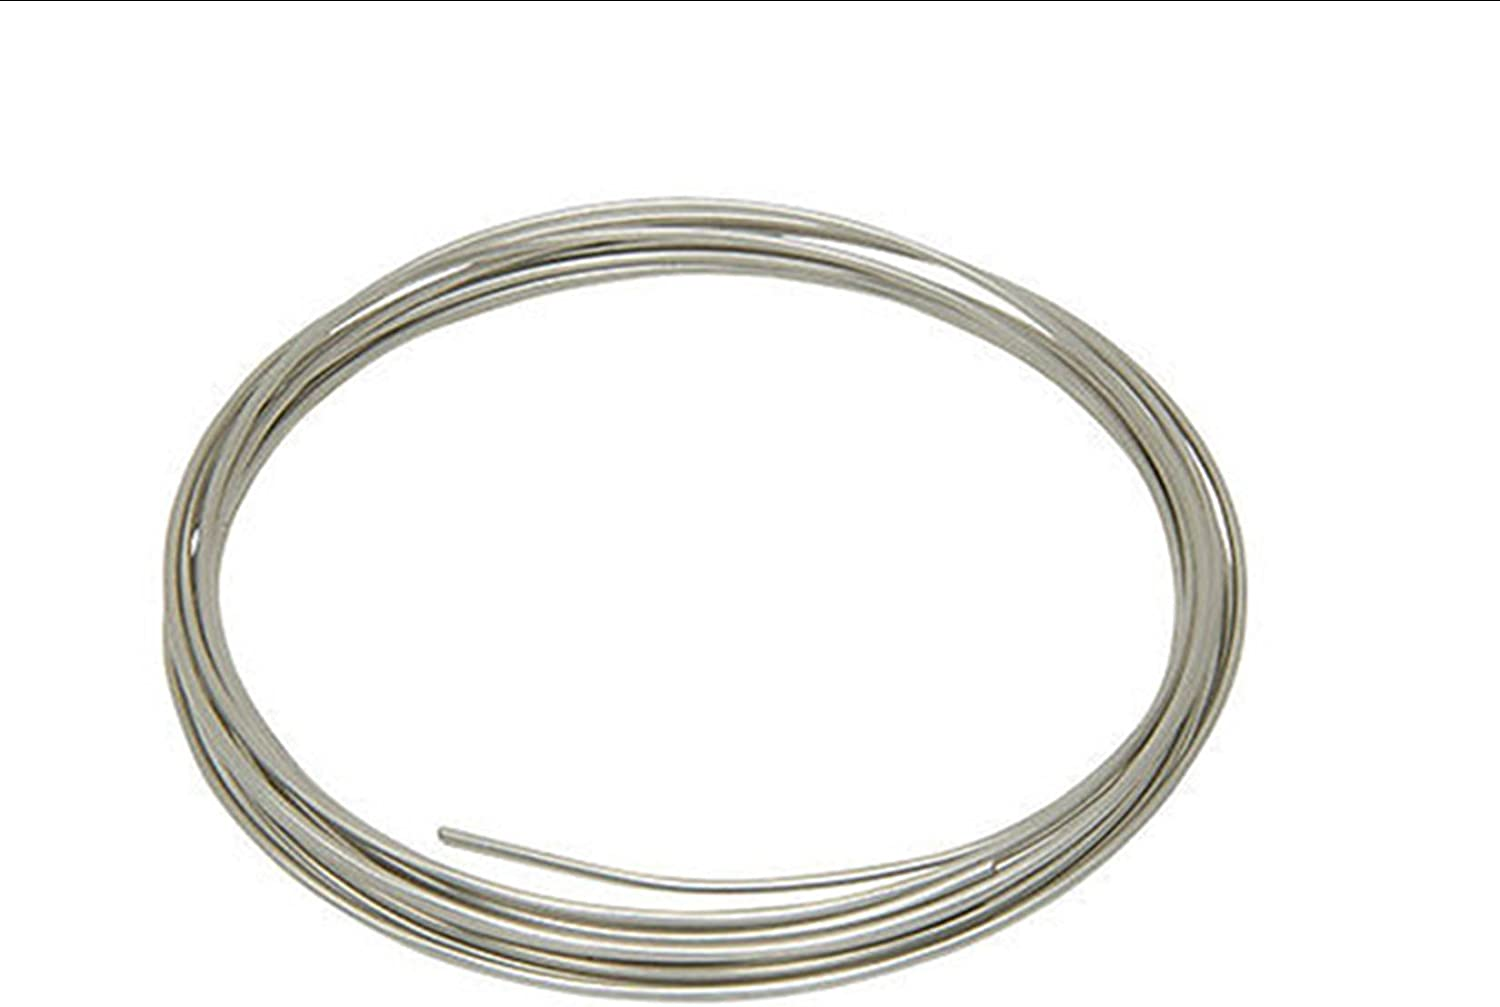 conforms with BS4109 25 SWG 21 SWG 24 SWG 18 SWG 35 SWG Tinned copper wire